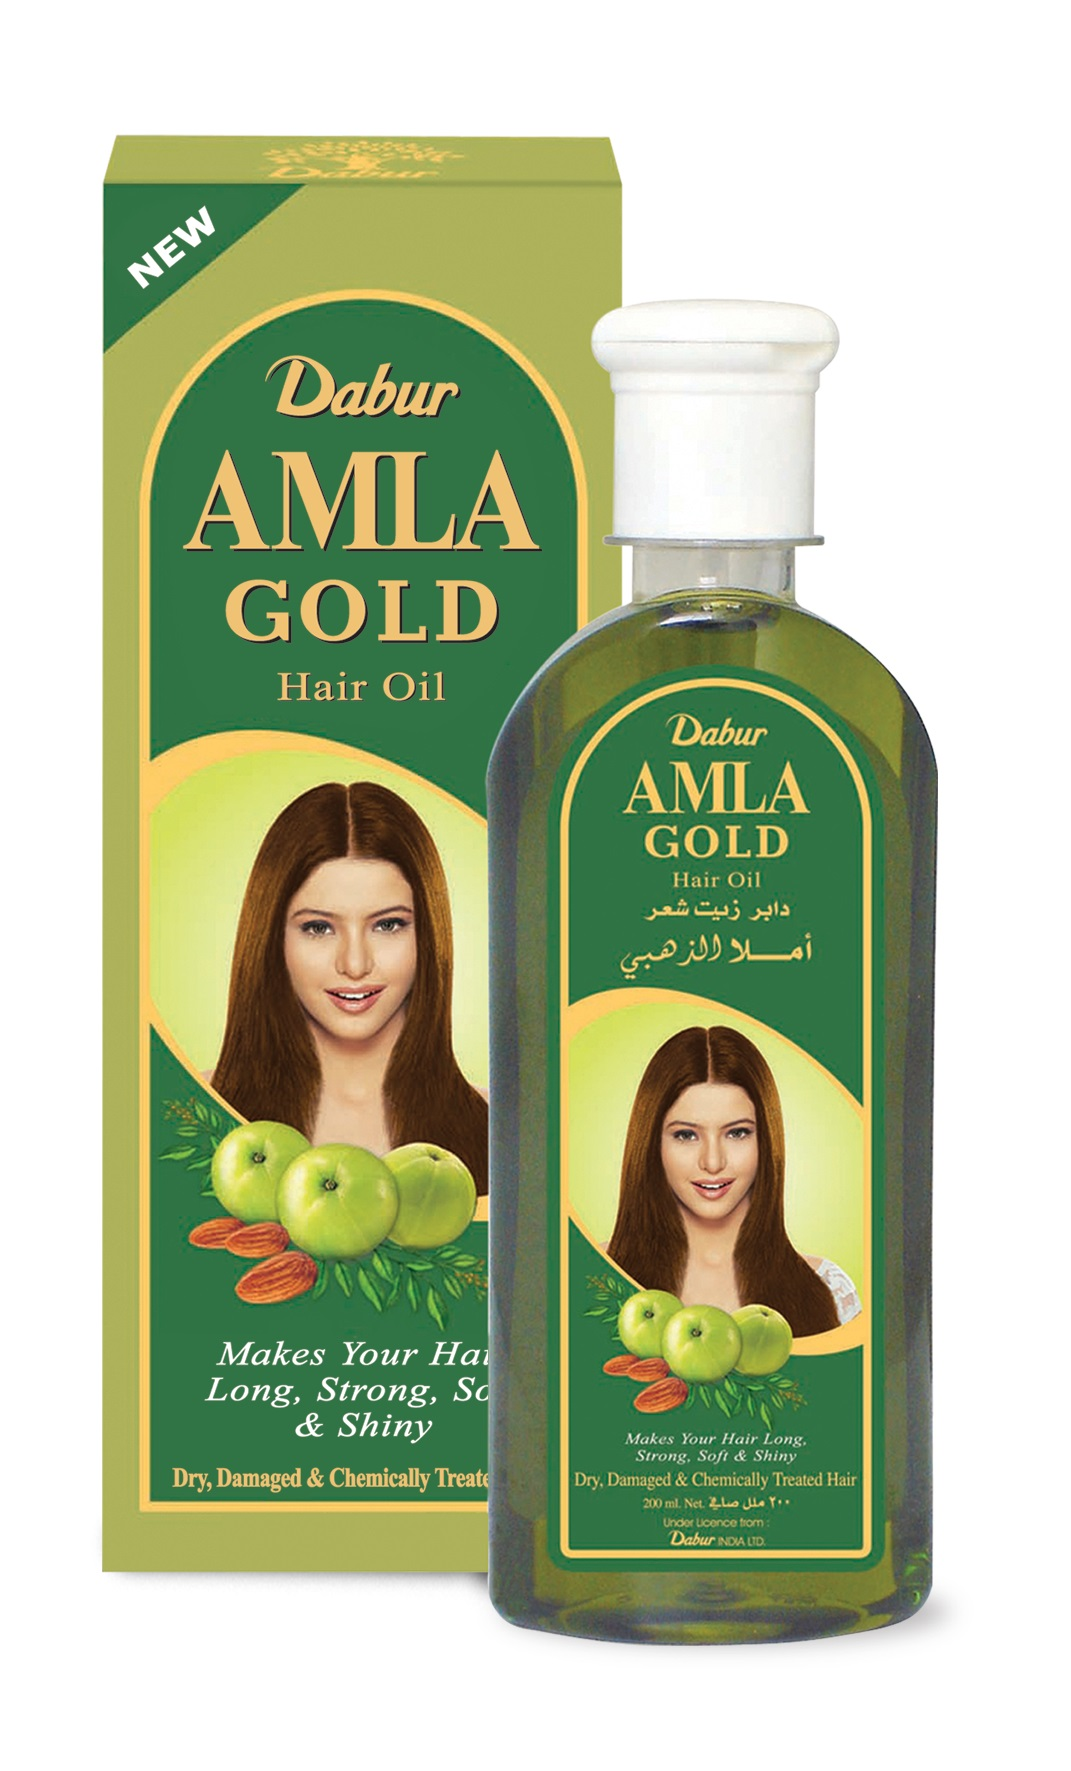 Dabur Amla Gold Hair Oil for long, strong, soft and shiny hair.